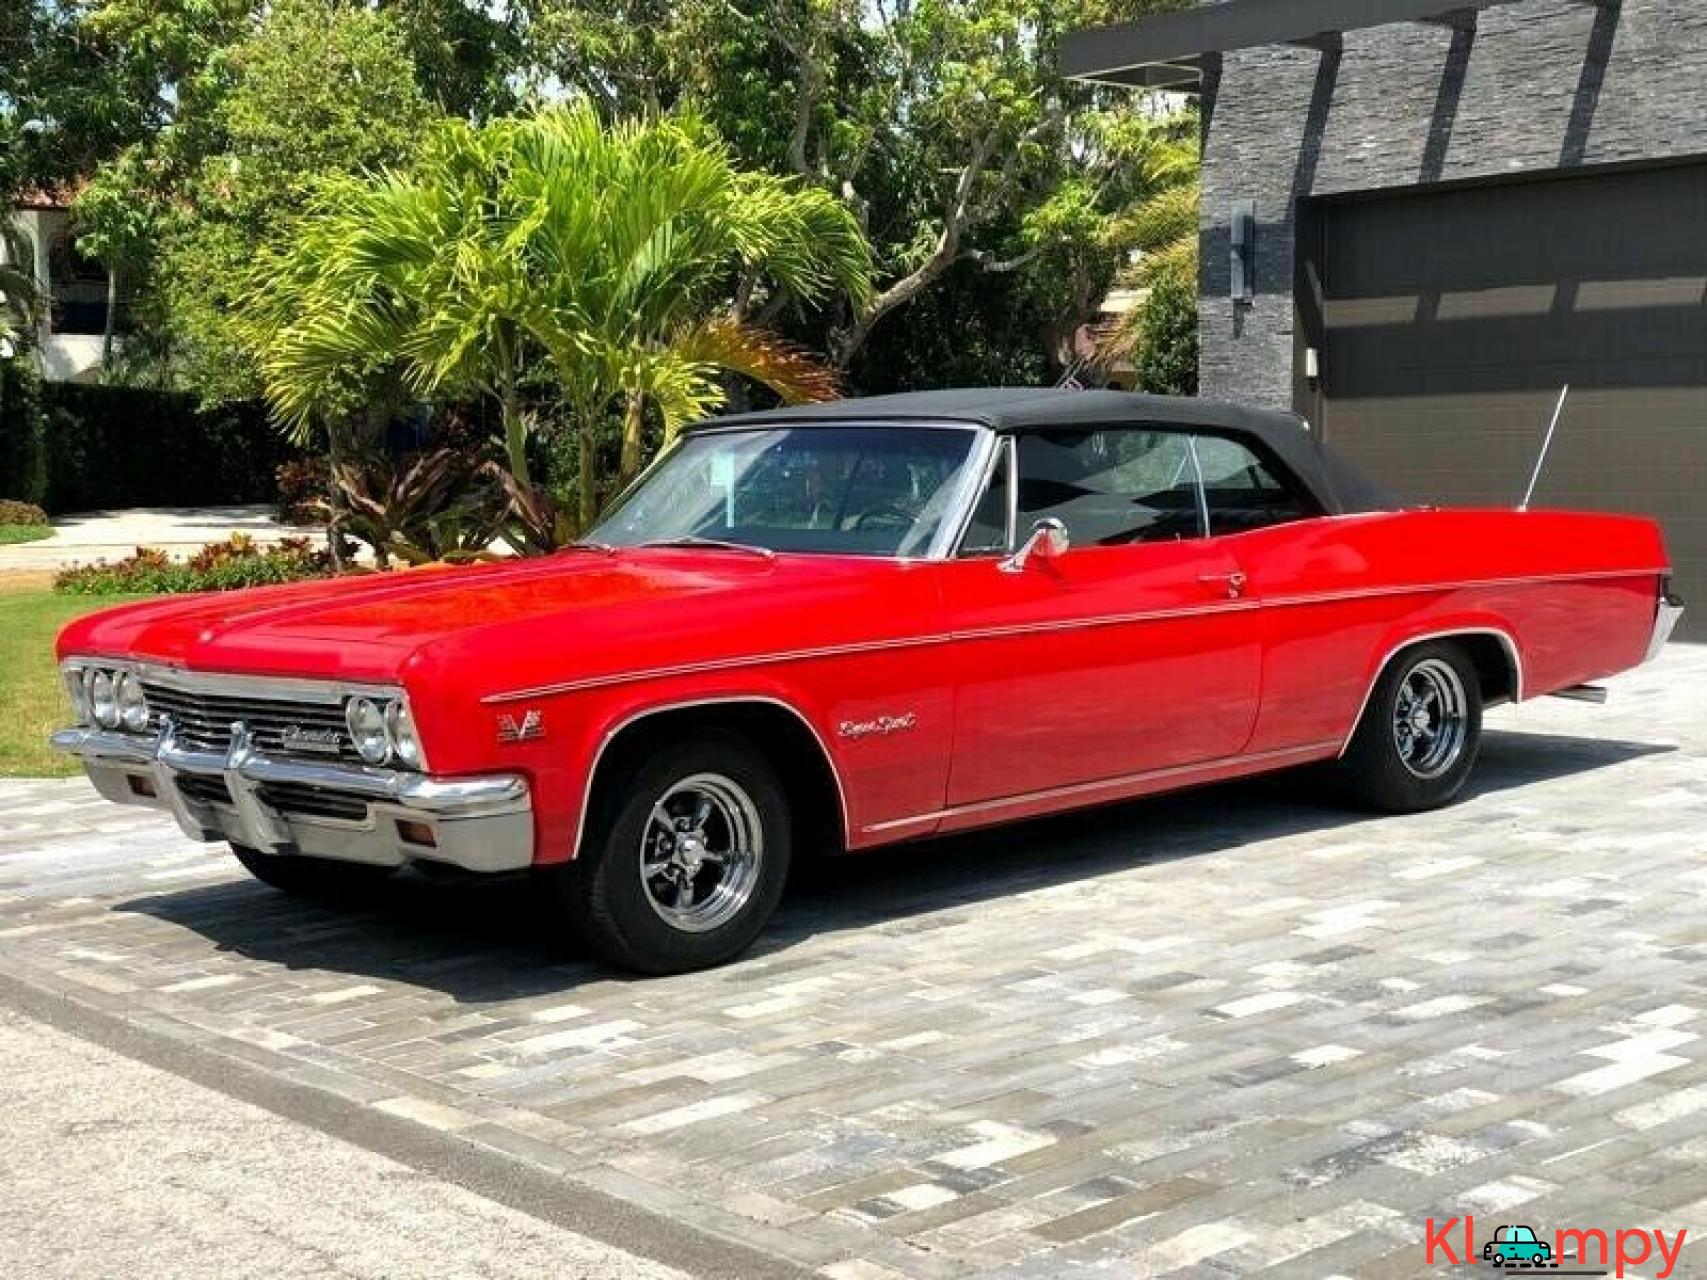 1966 Chevrolet Impala MATCHING NUMBERS PWR - 1/20